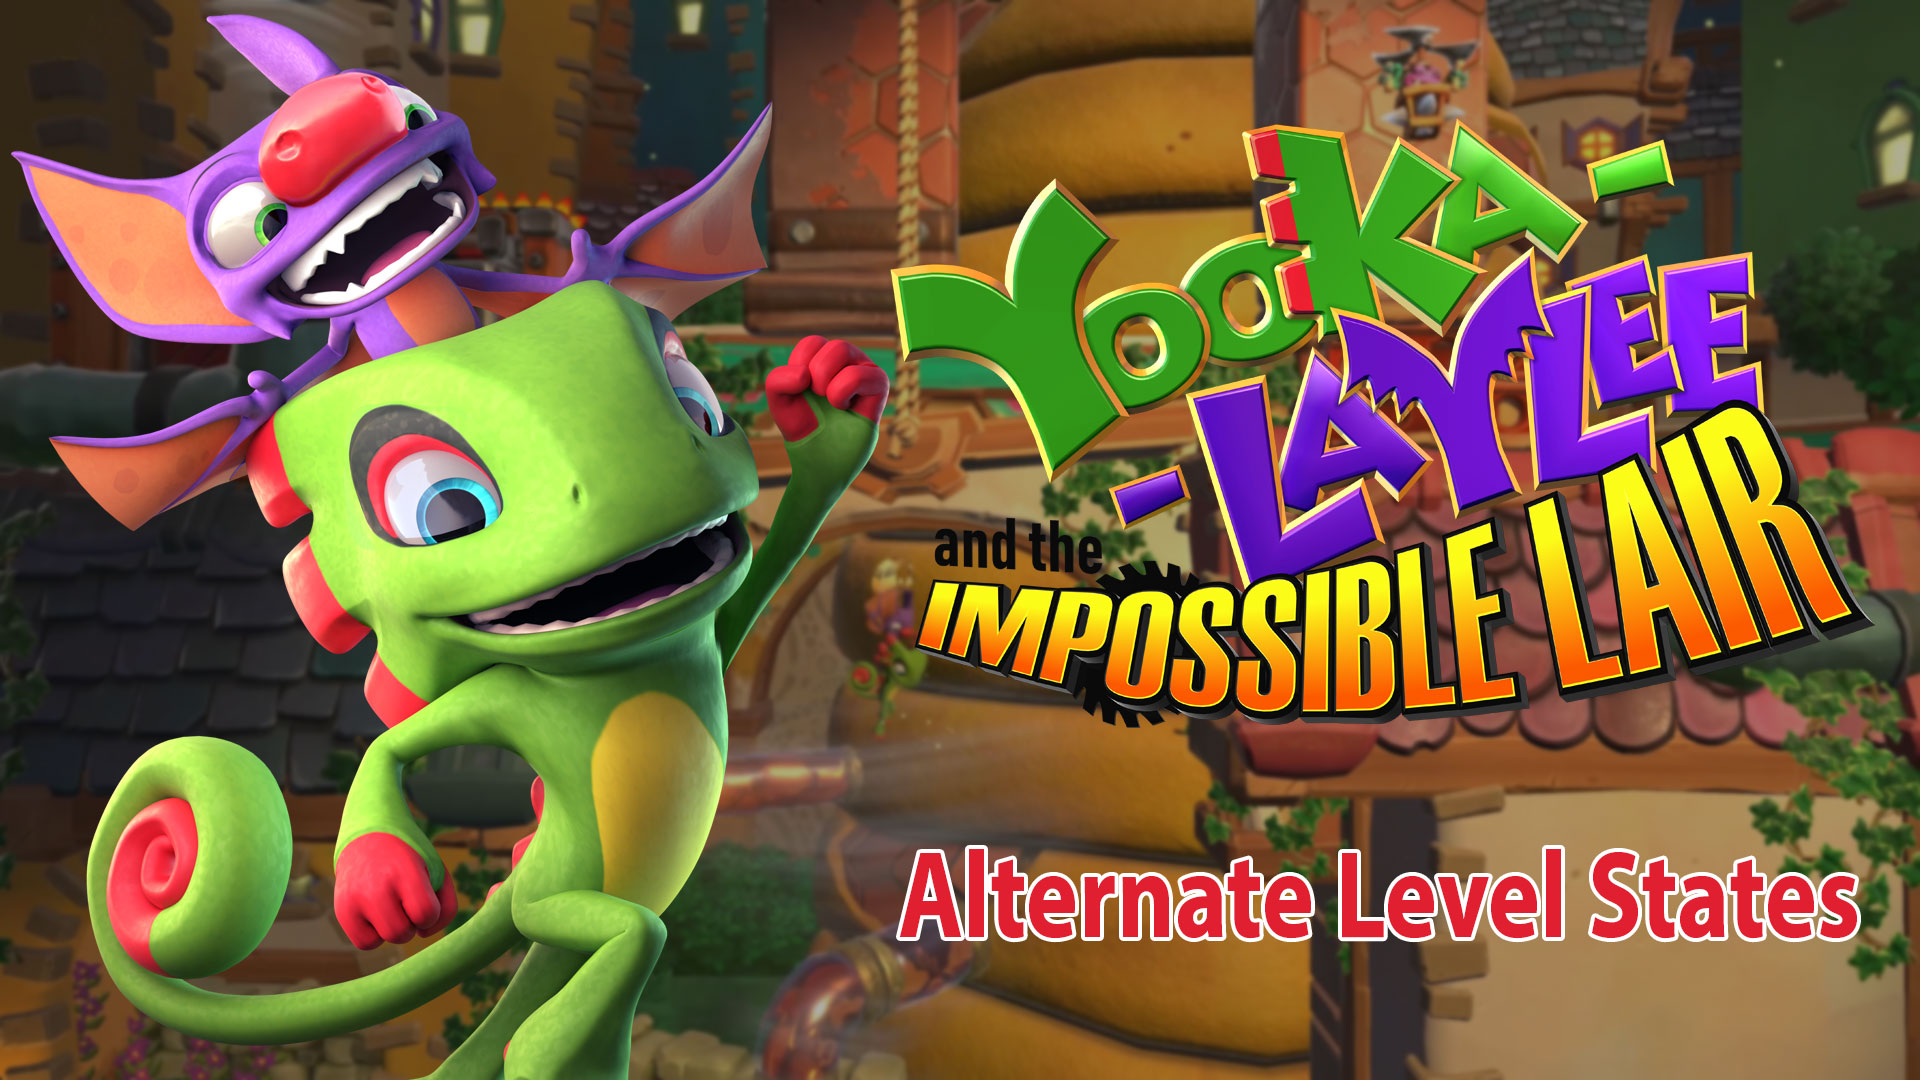 Yooka-Laylee and the Impossible Lair – Alternate Level States